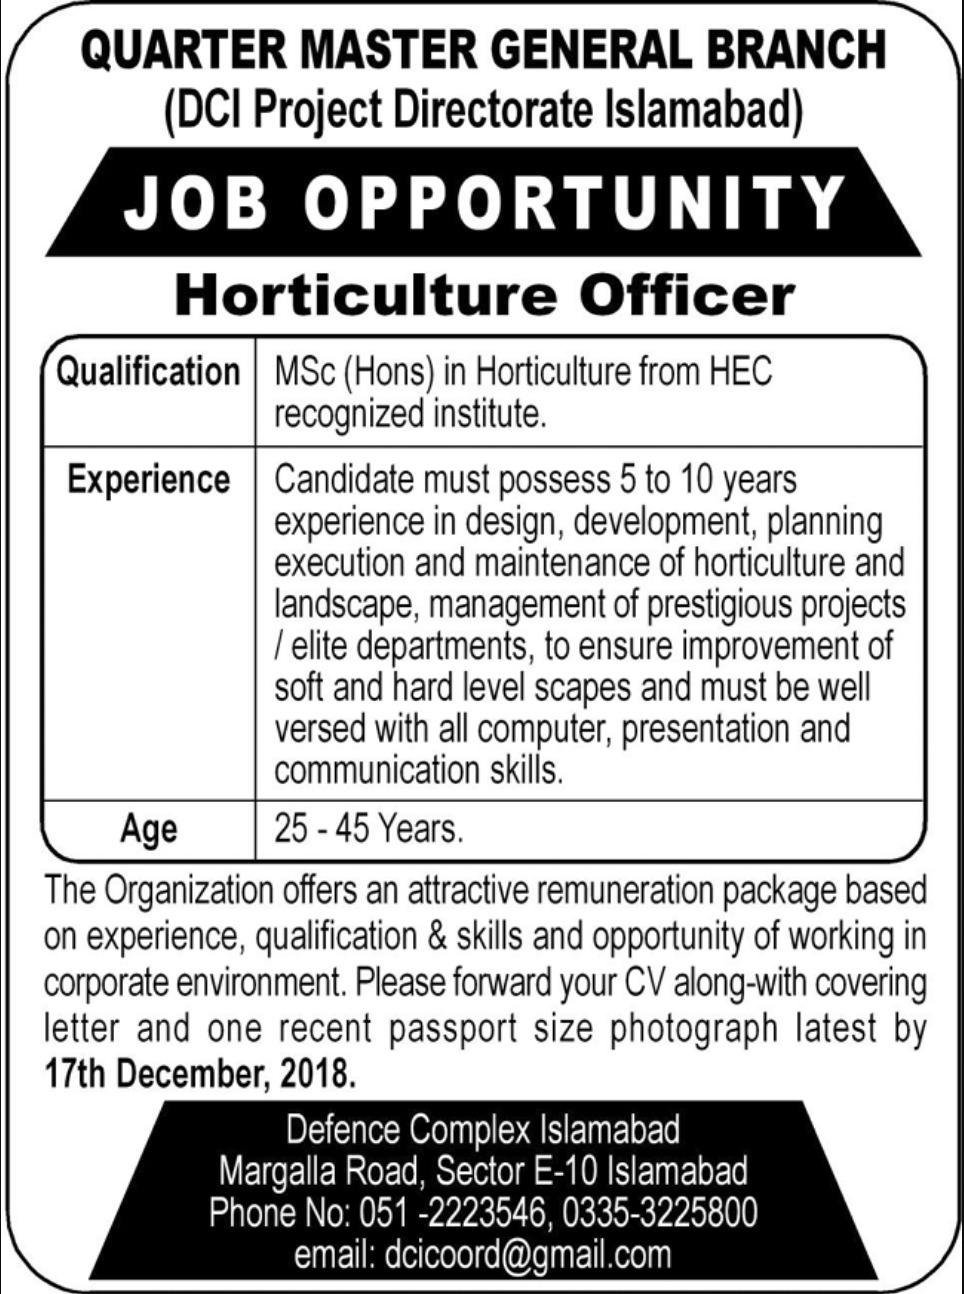 Quarter Master General Branch Islamabad Jobs 2018